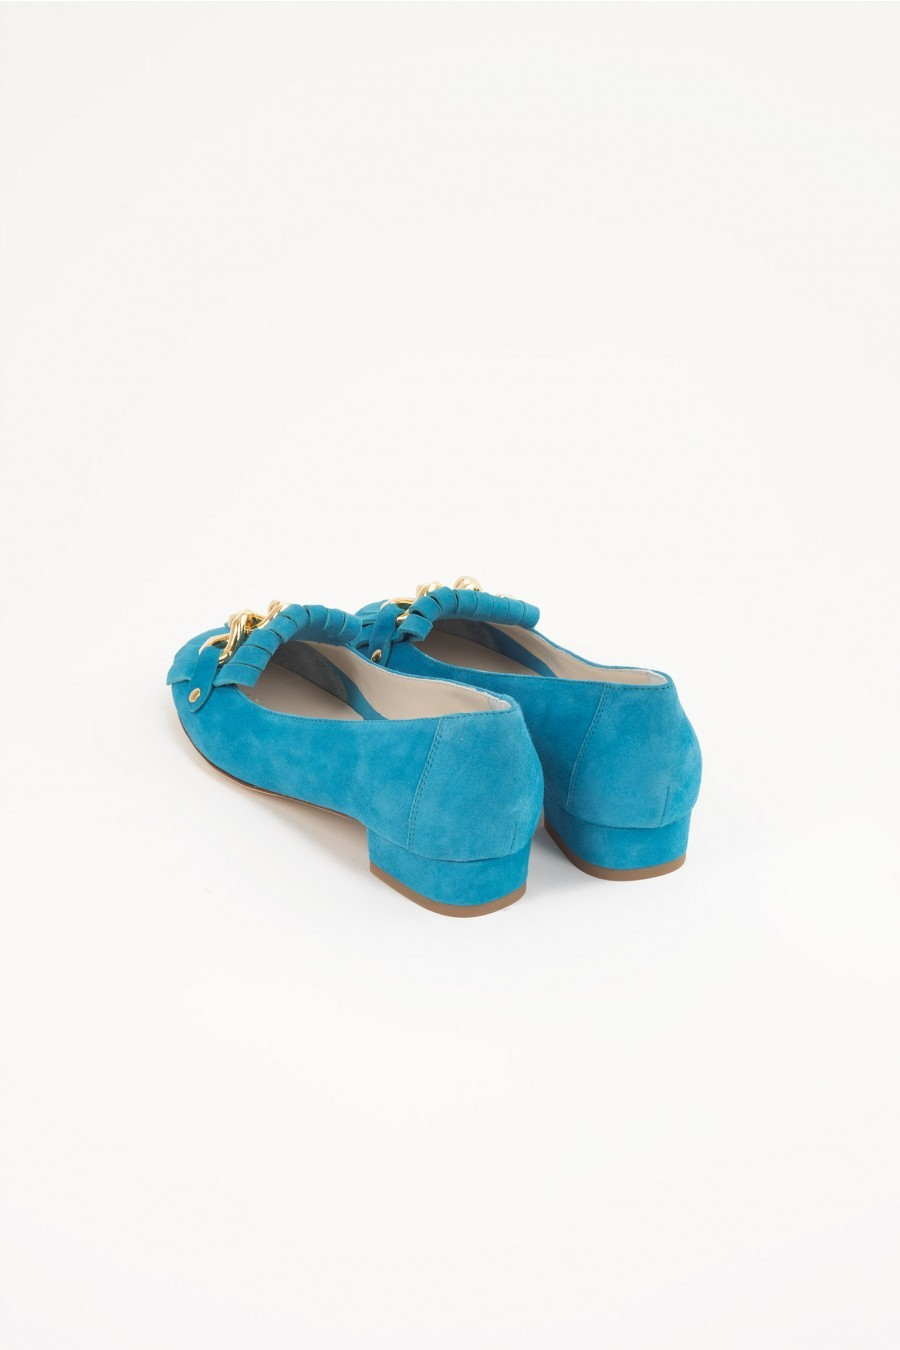 turquoise flat shoes gold chain Lazzari